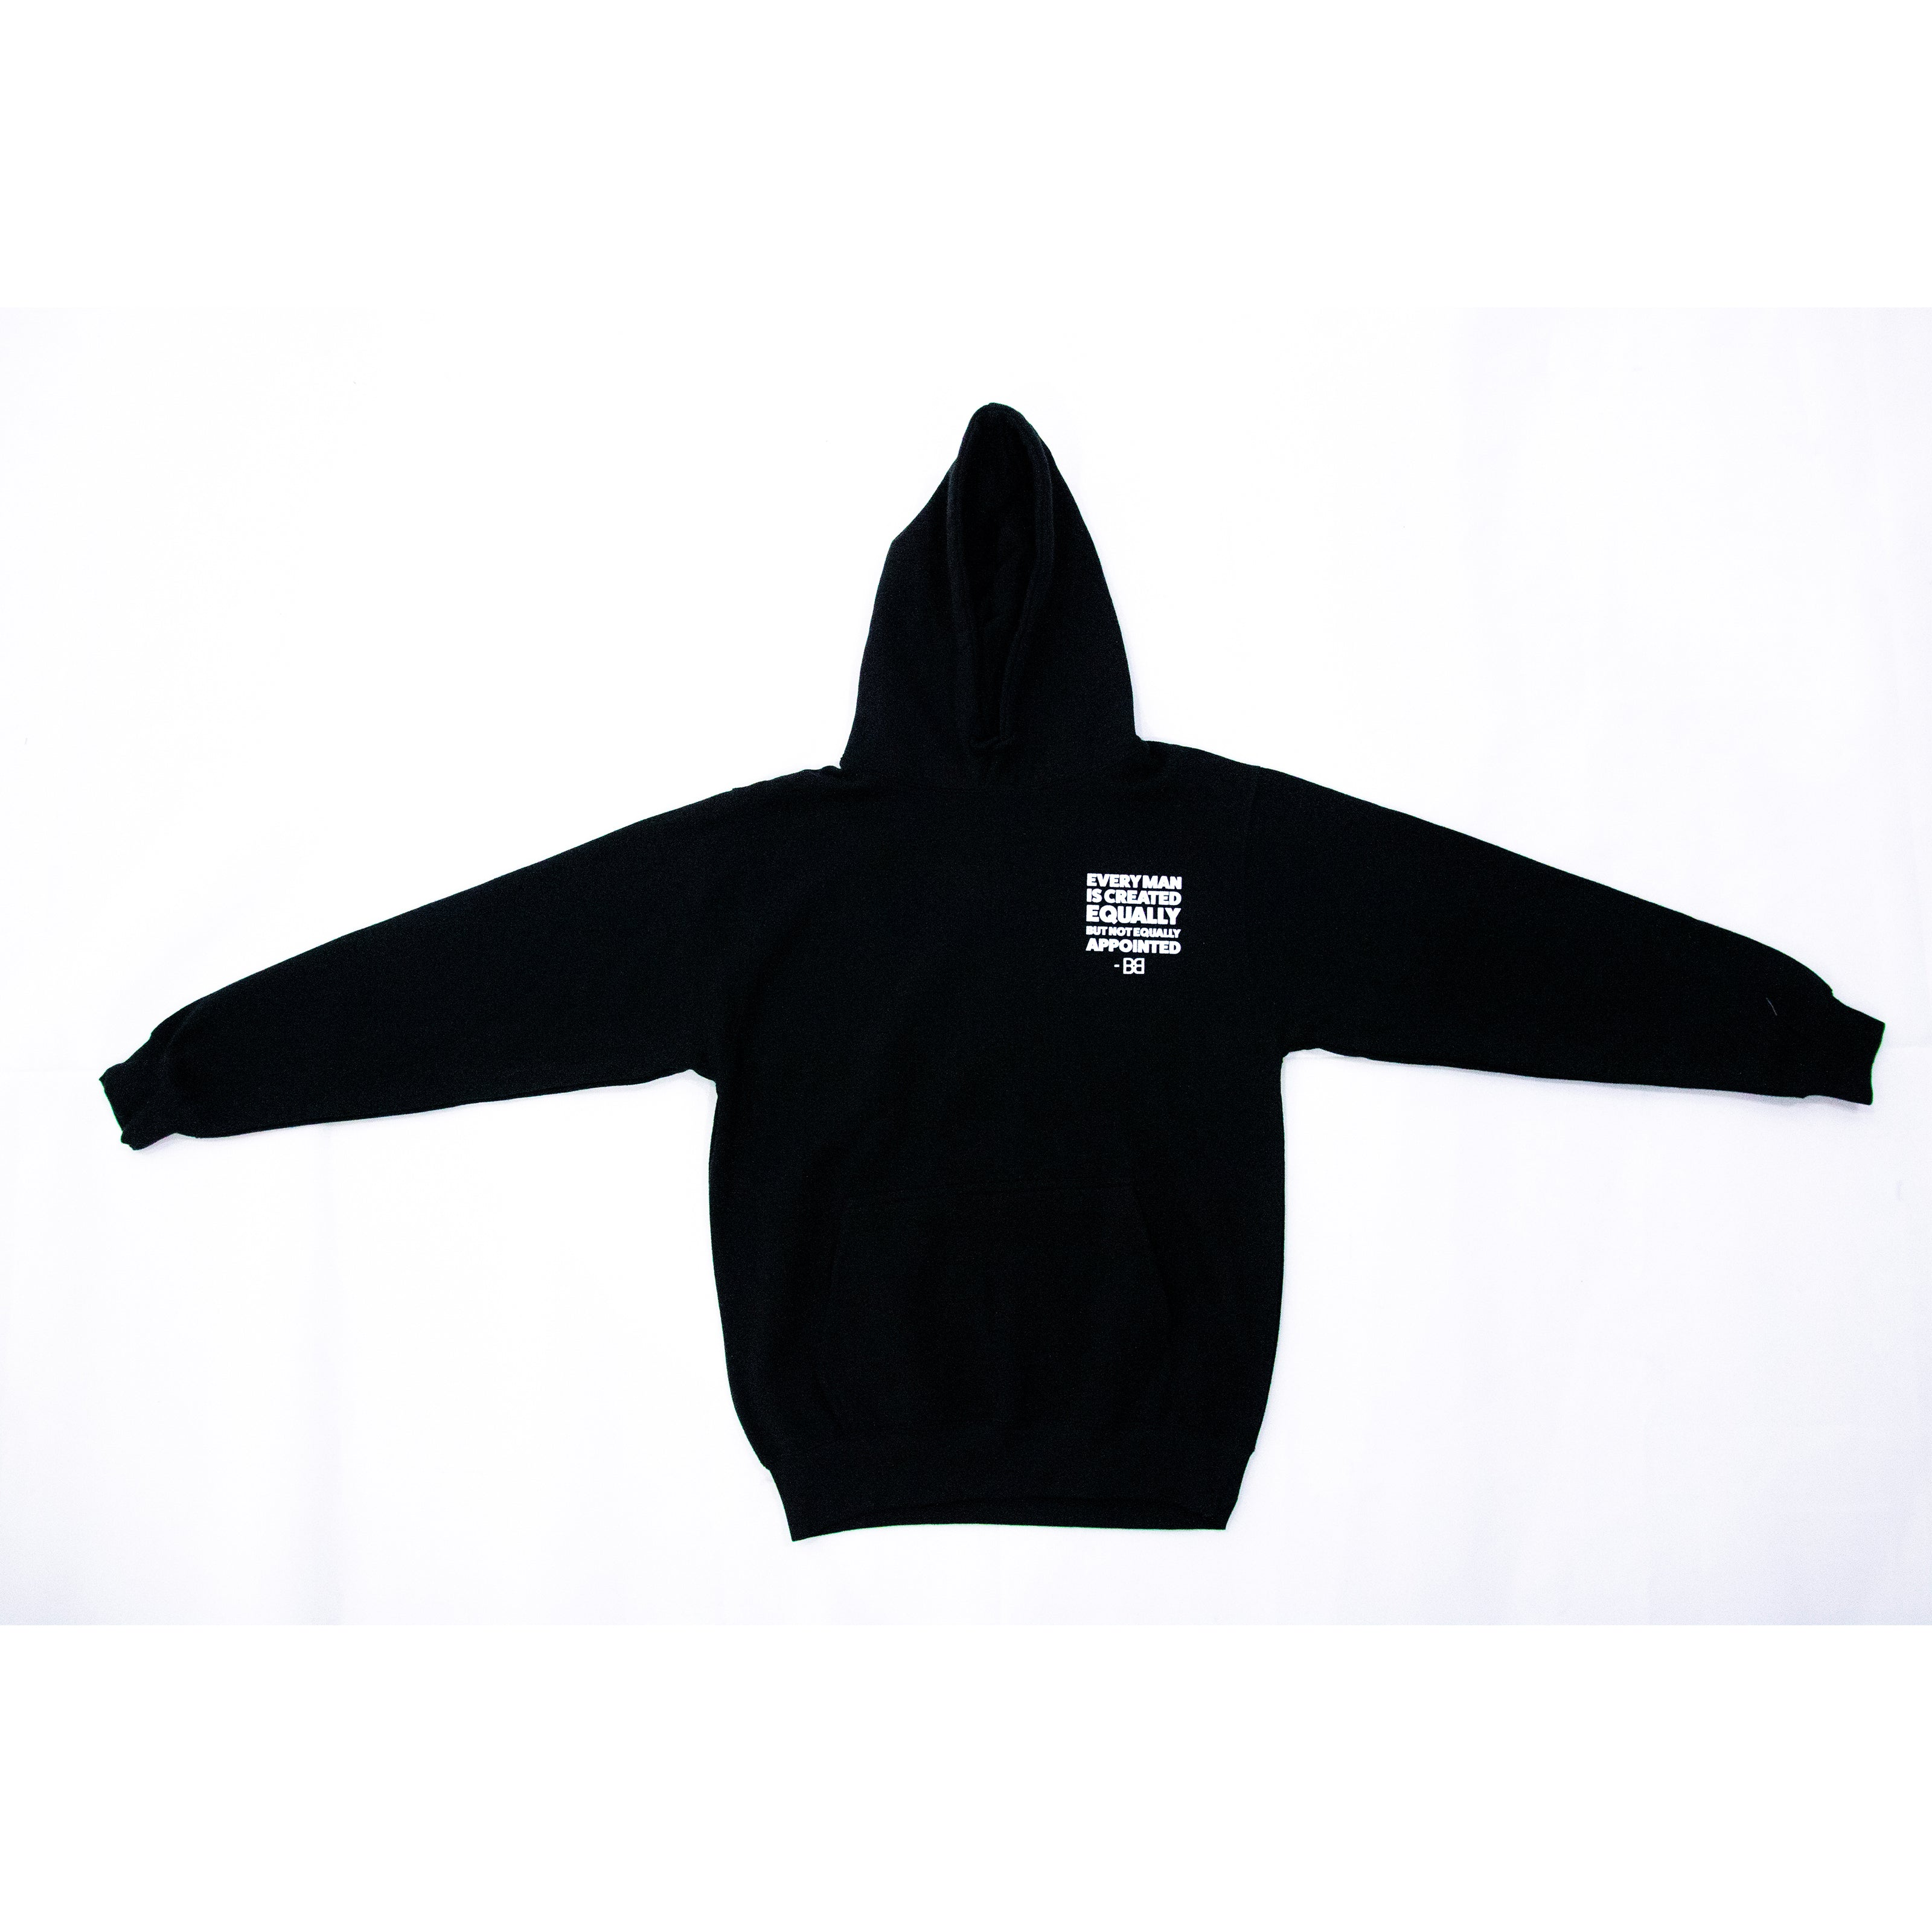 "BB ""EVERY MAN IS CREATED EQUALLY"" Quote Hoodie"